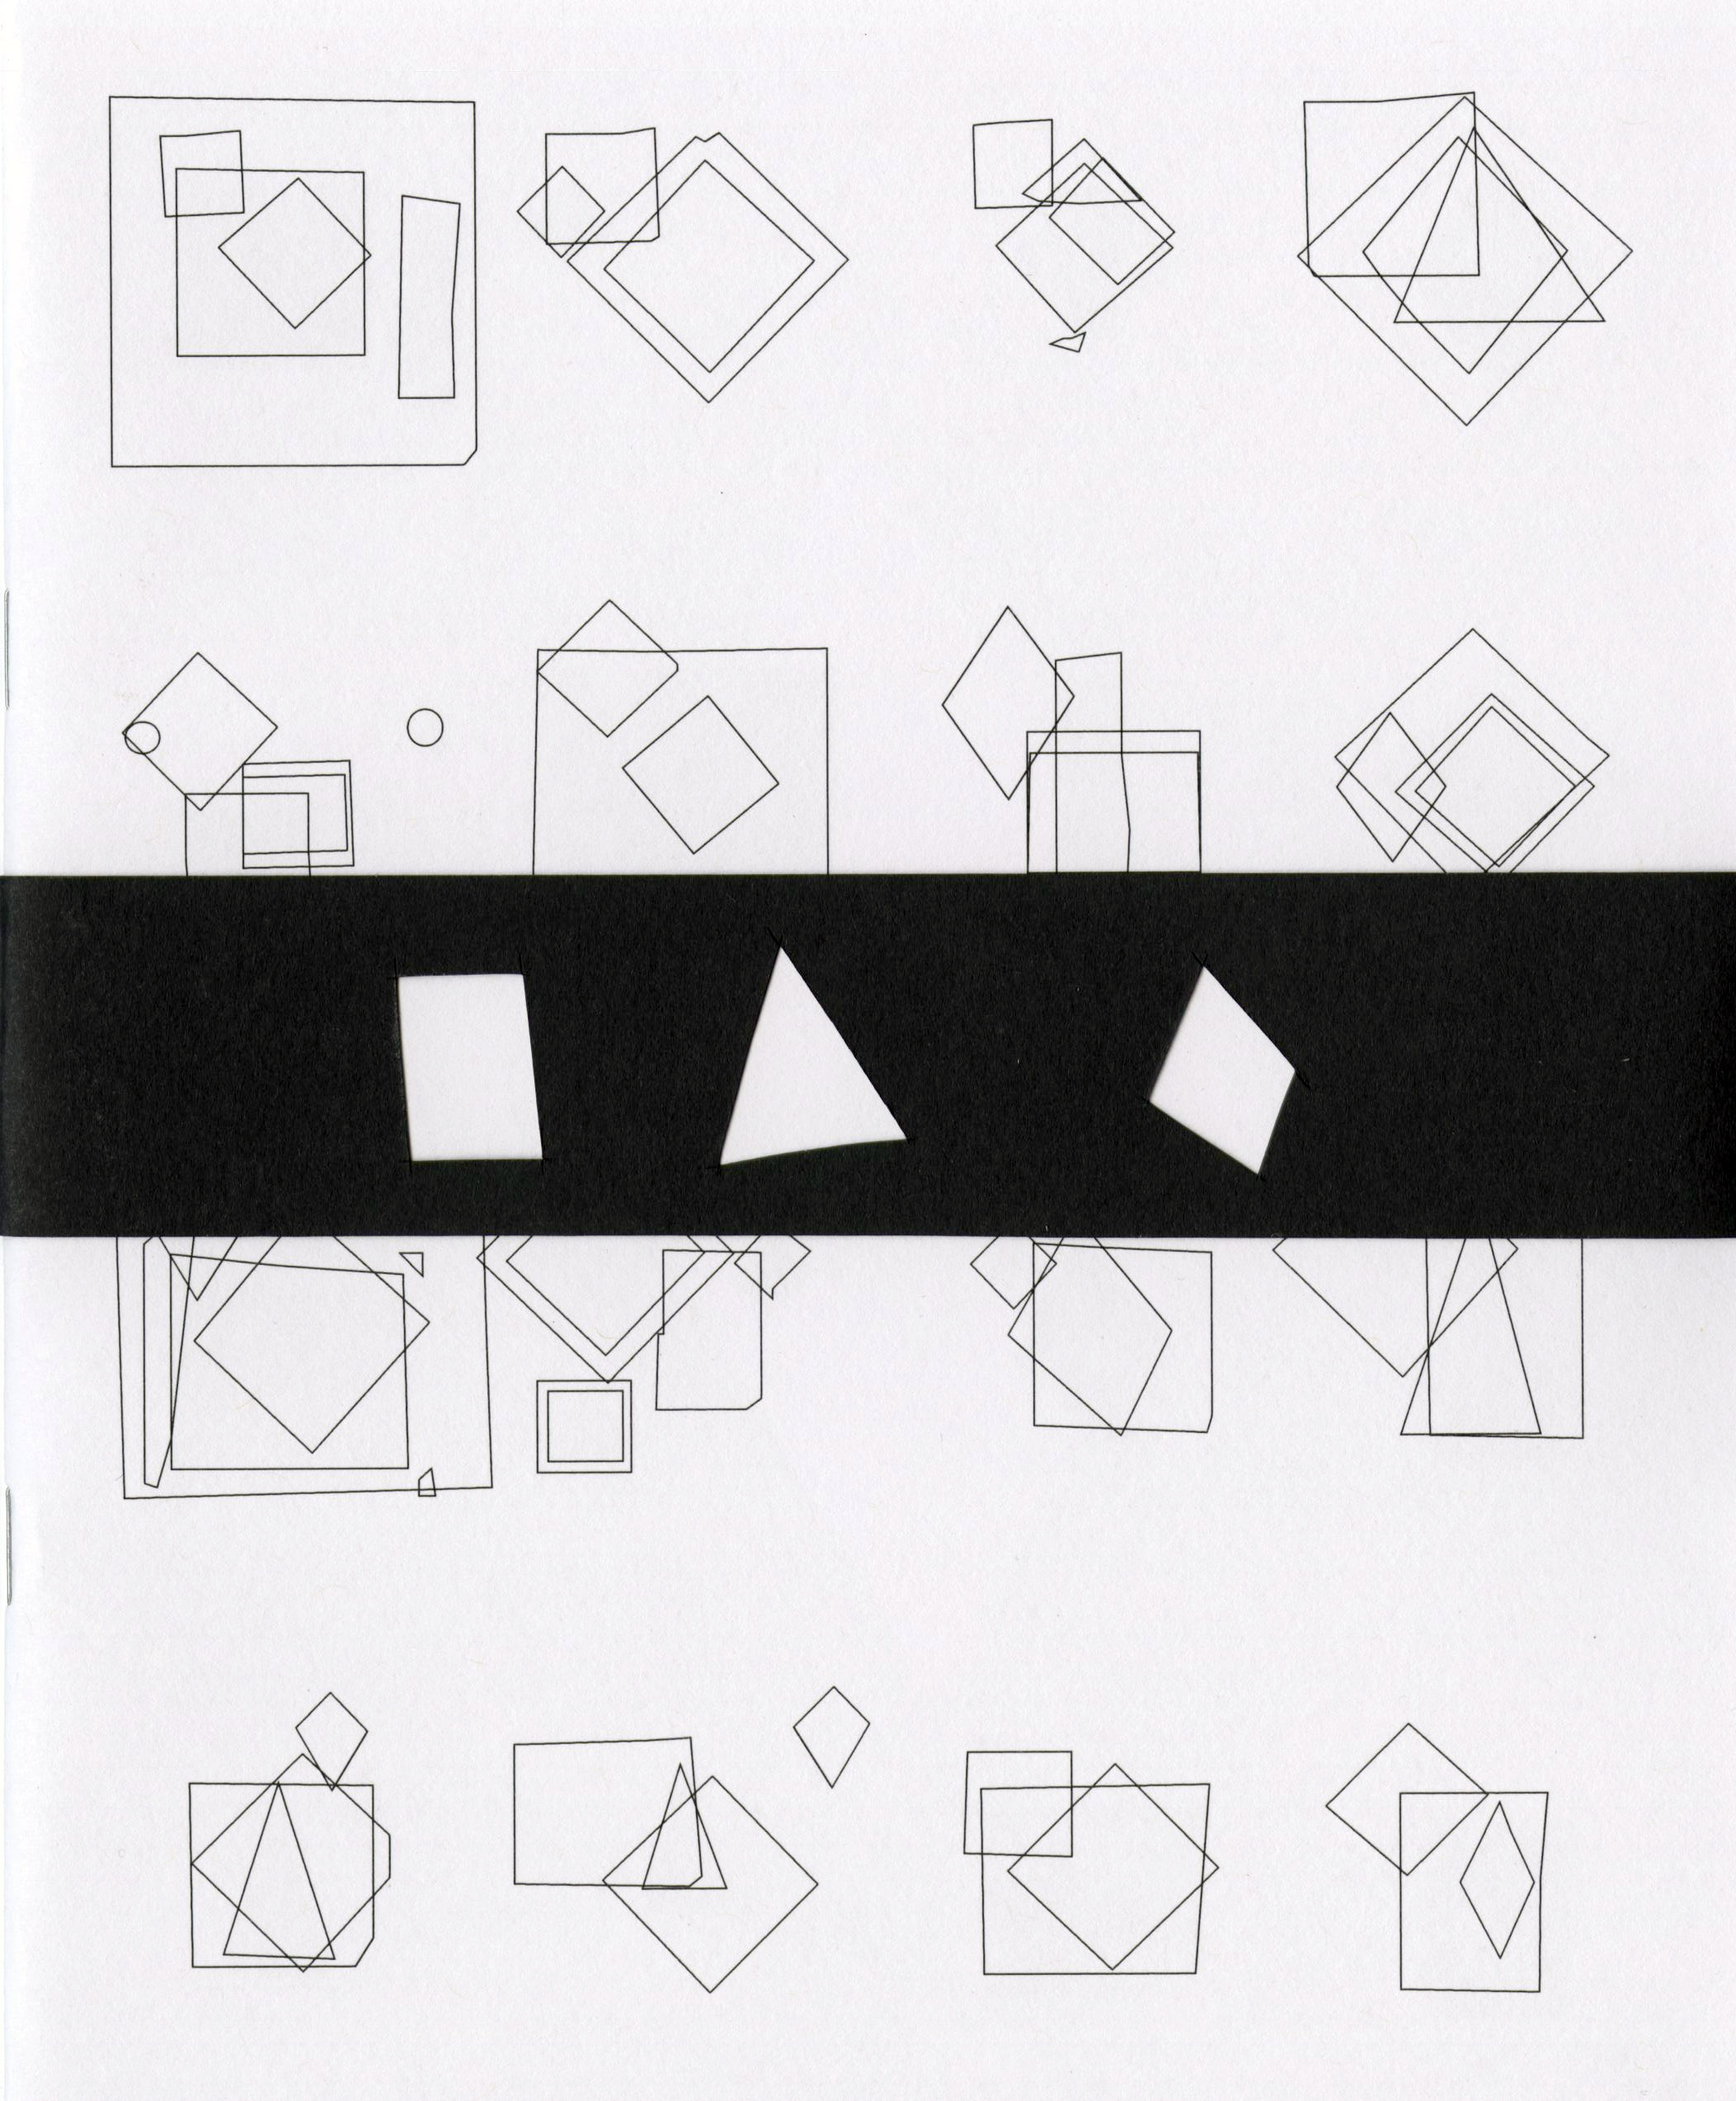 white book cover with black line drawings of geometric shapes